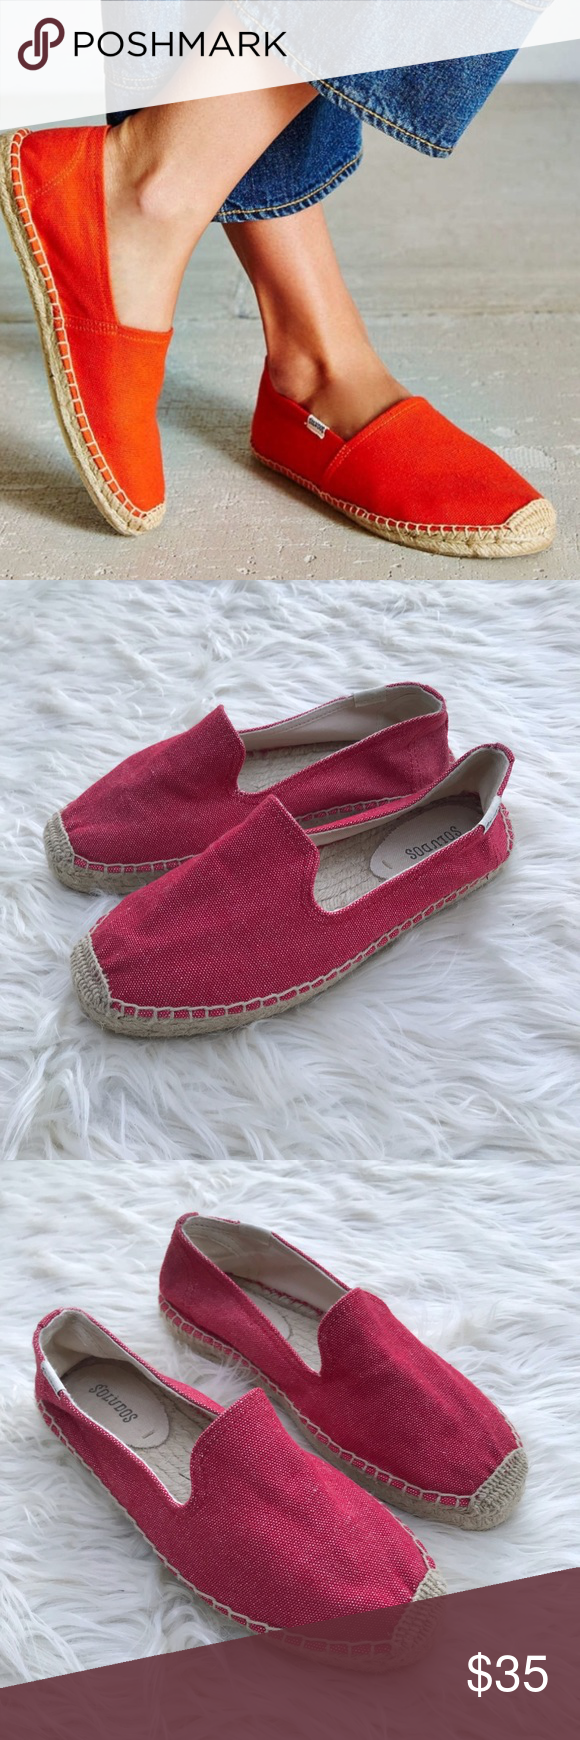 1cbaefcc7079 Soludos Red Dali Espadrille Slip Ons Size 7.5 Soludos Red Dali Espadrille  Slip Ons Size 7.5 Great condition Soludos Shoes Espadrilles